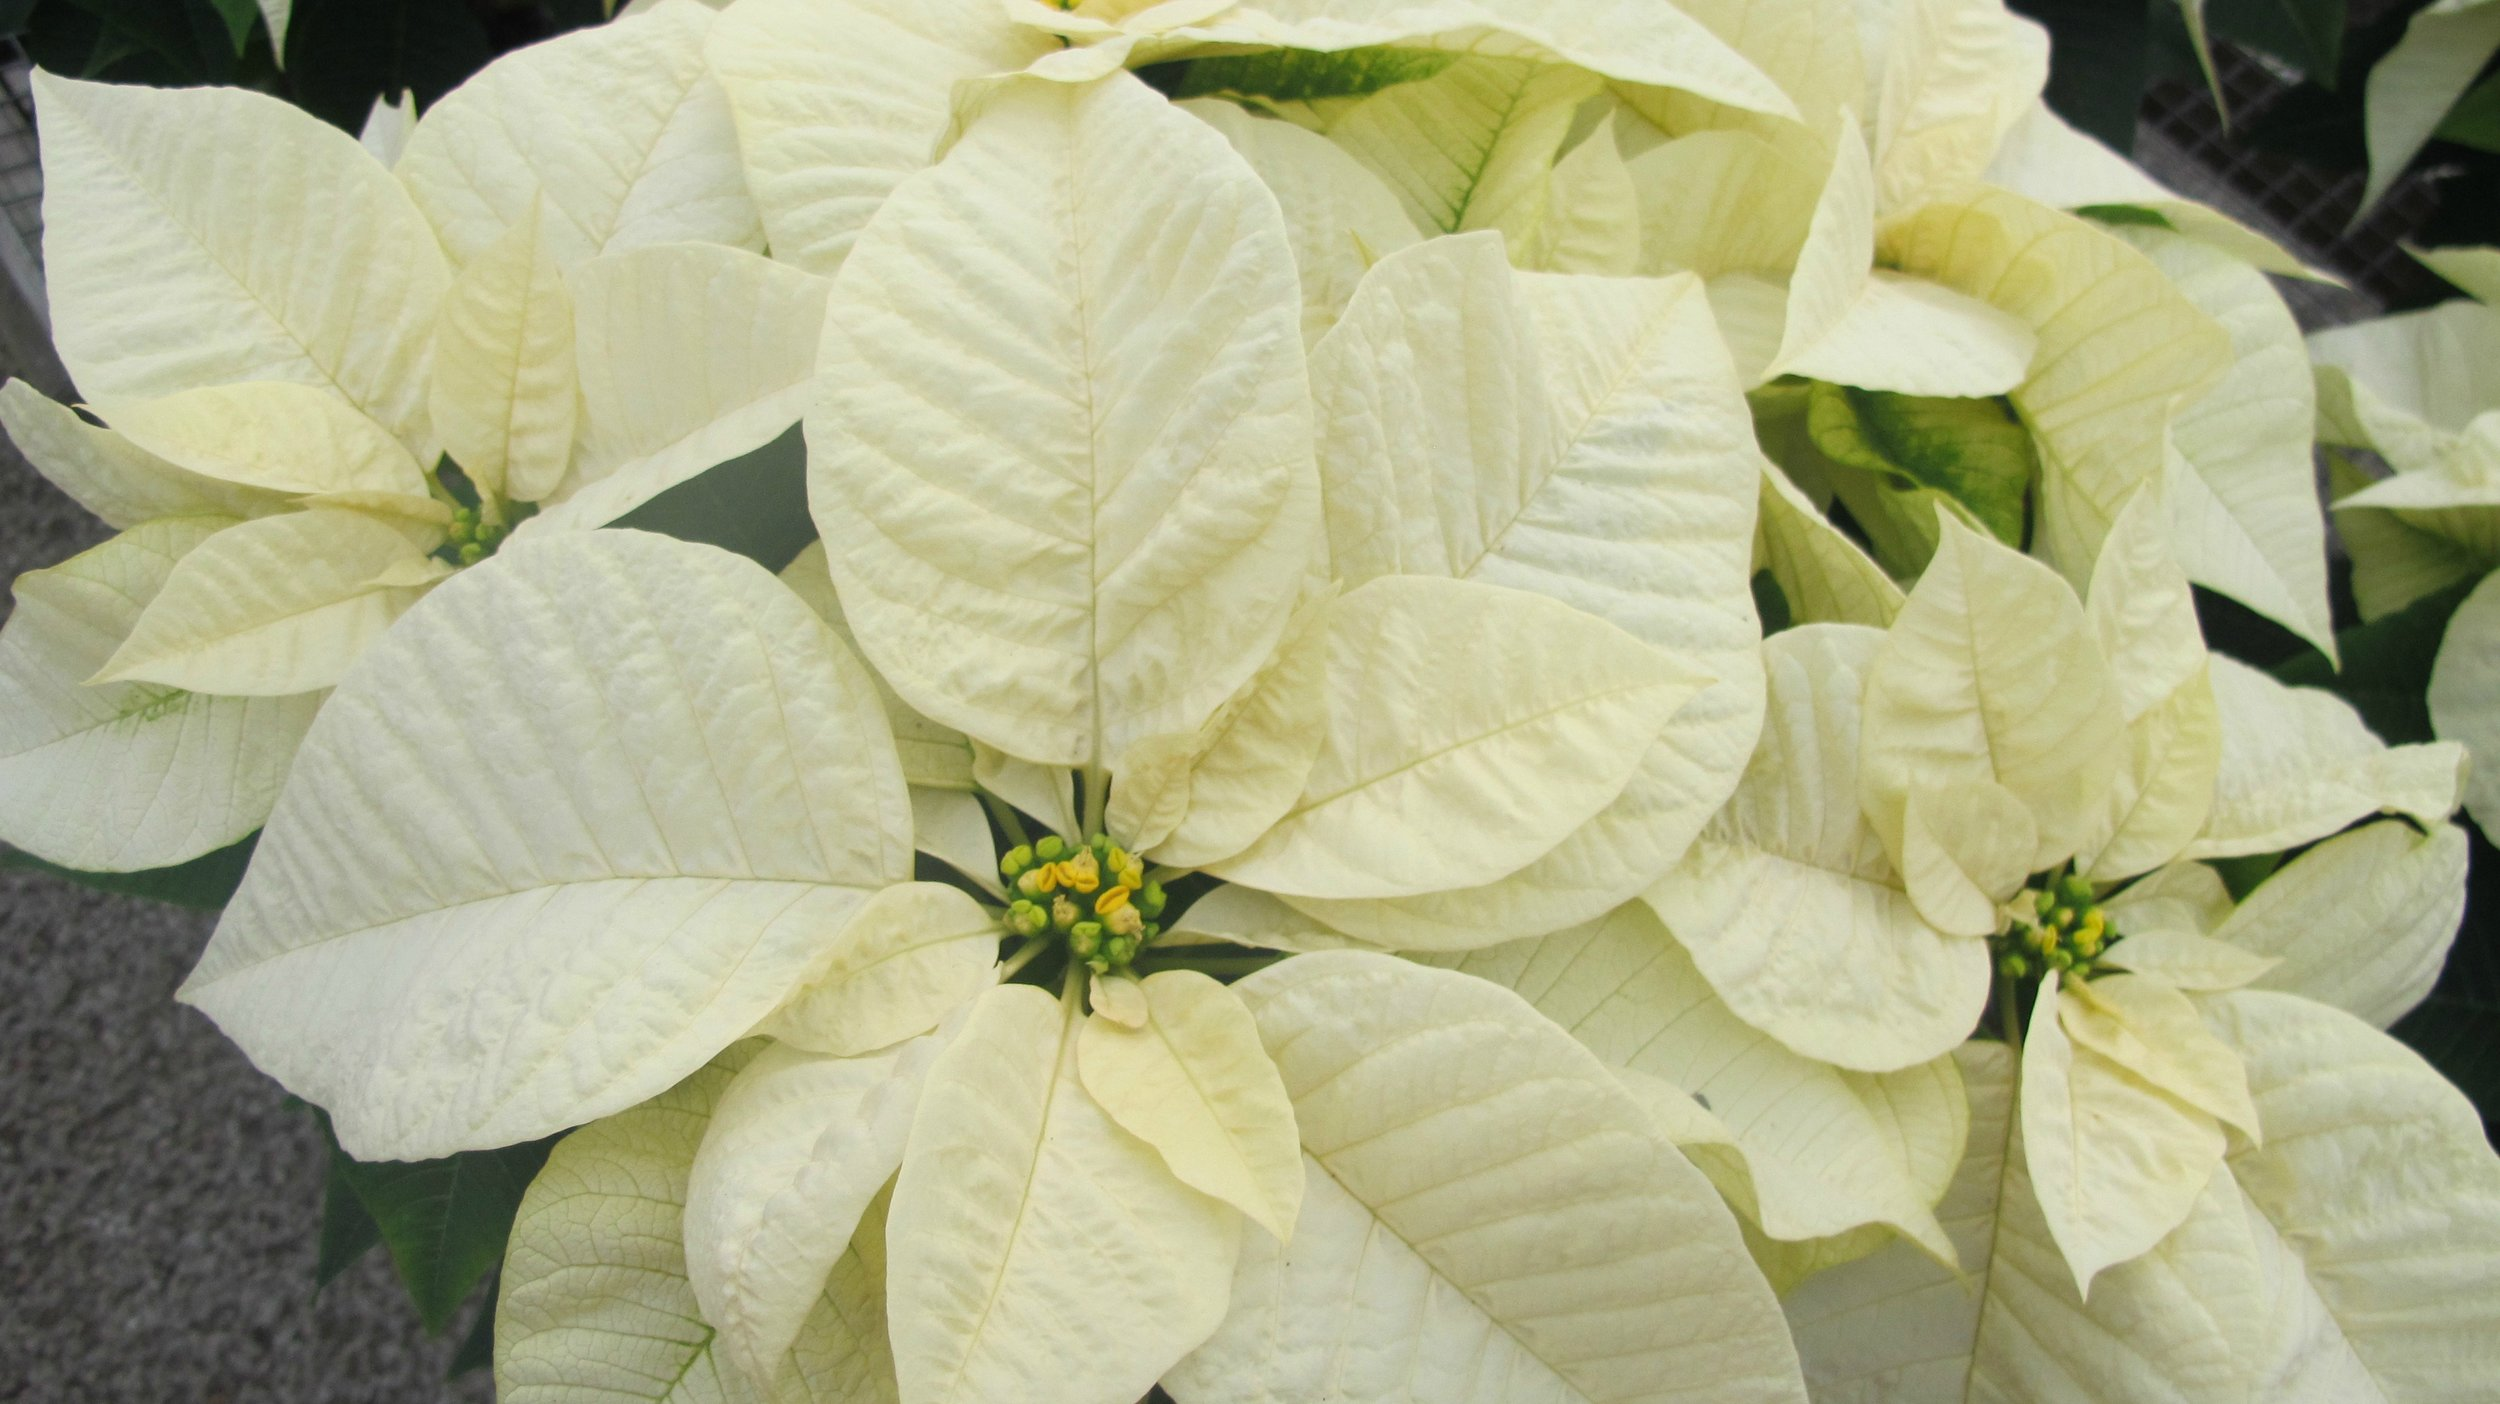 P- White Poinsettia.jpg